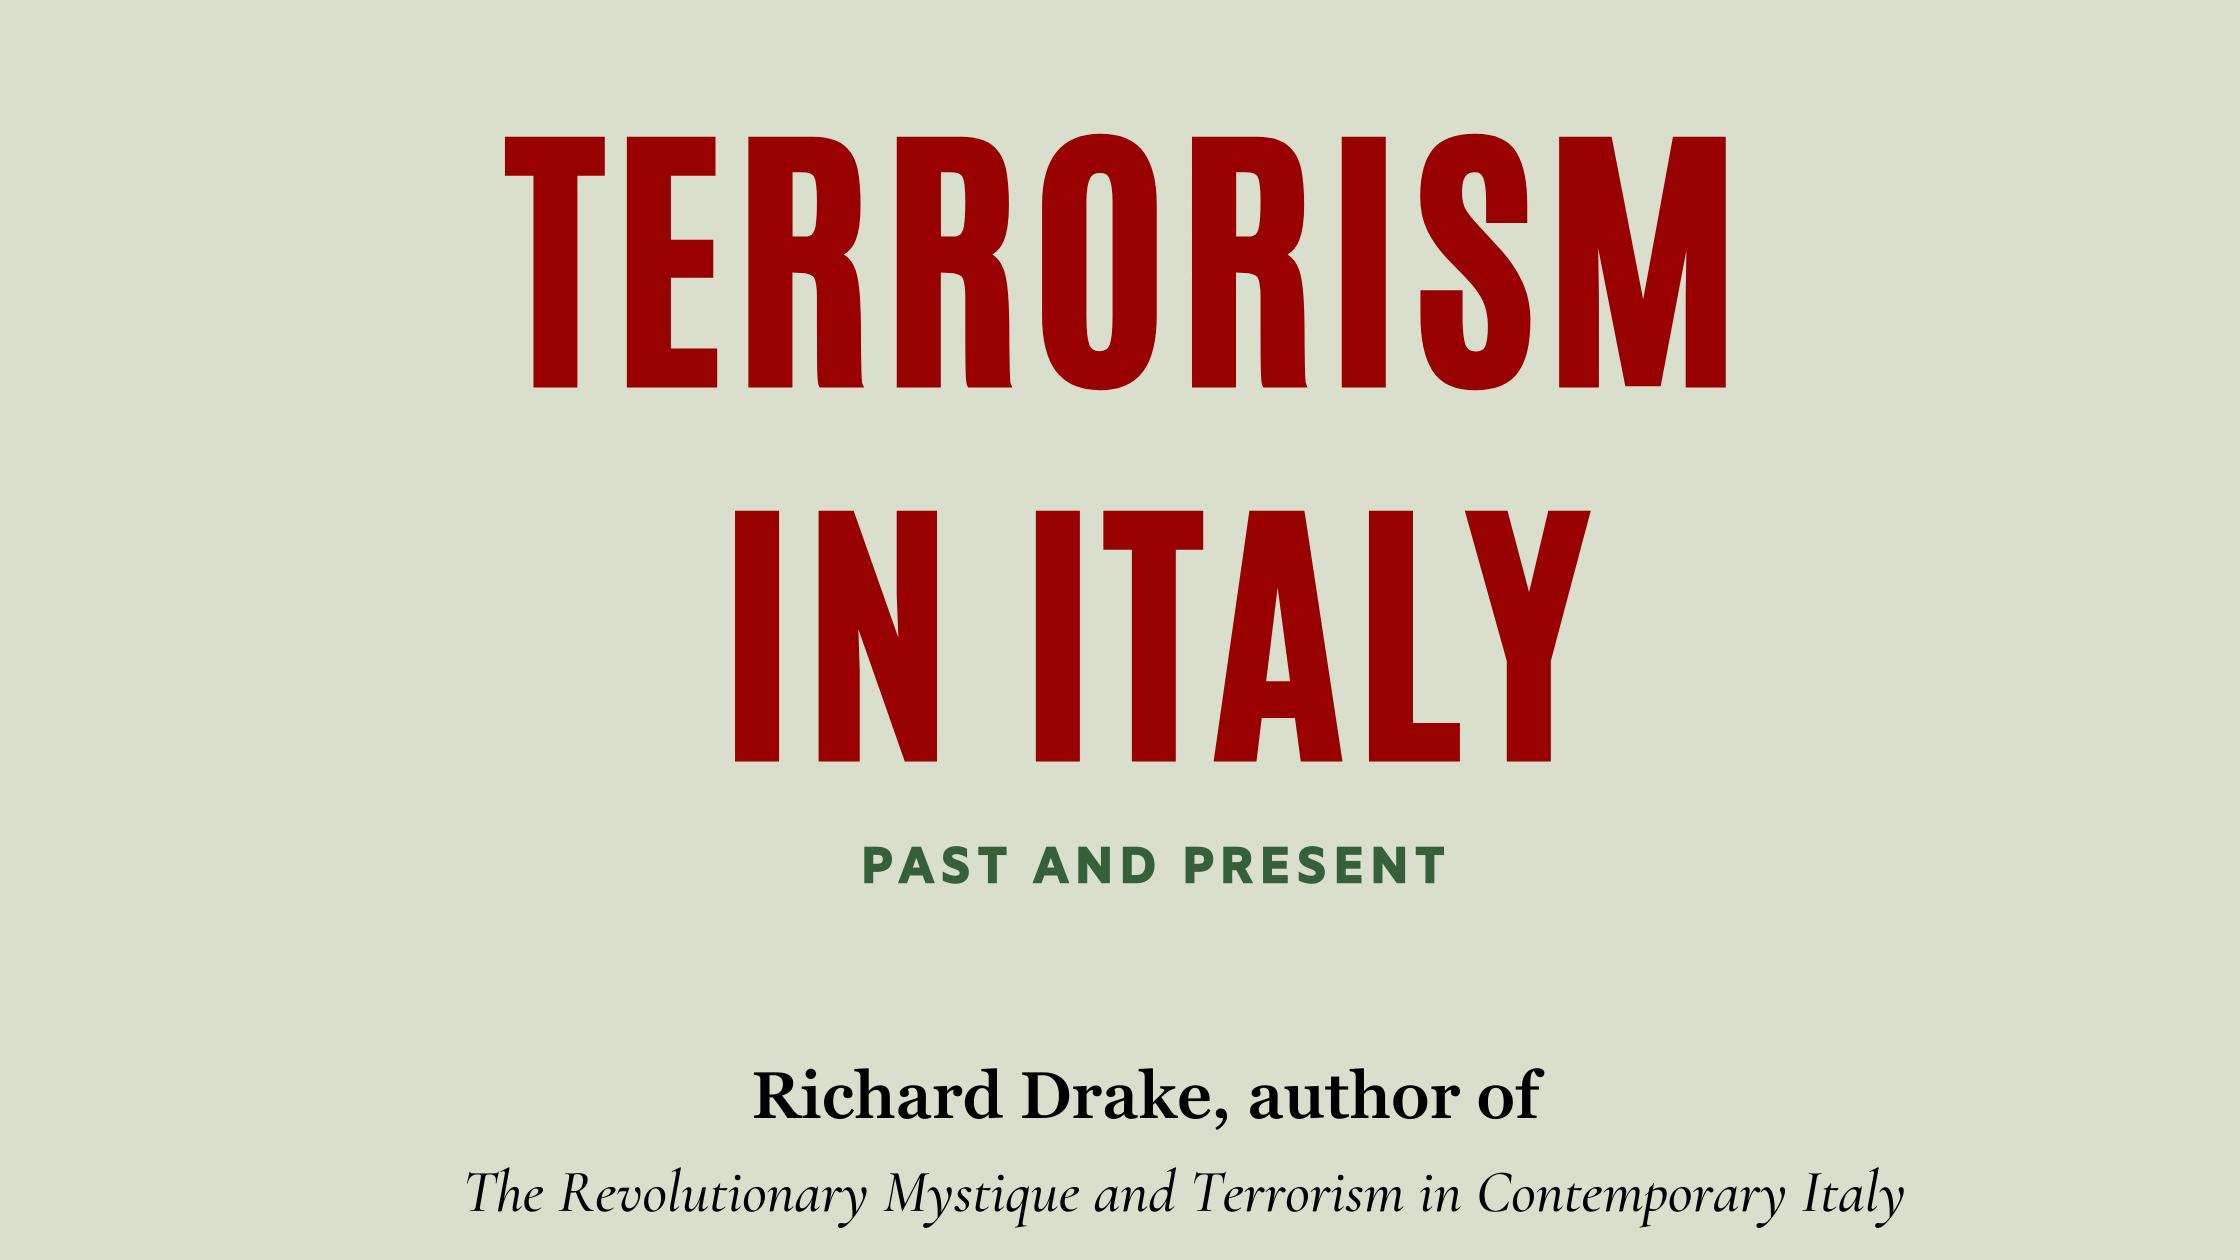 Terrorism in Italy: Past and Present